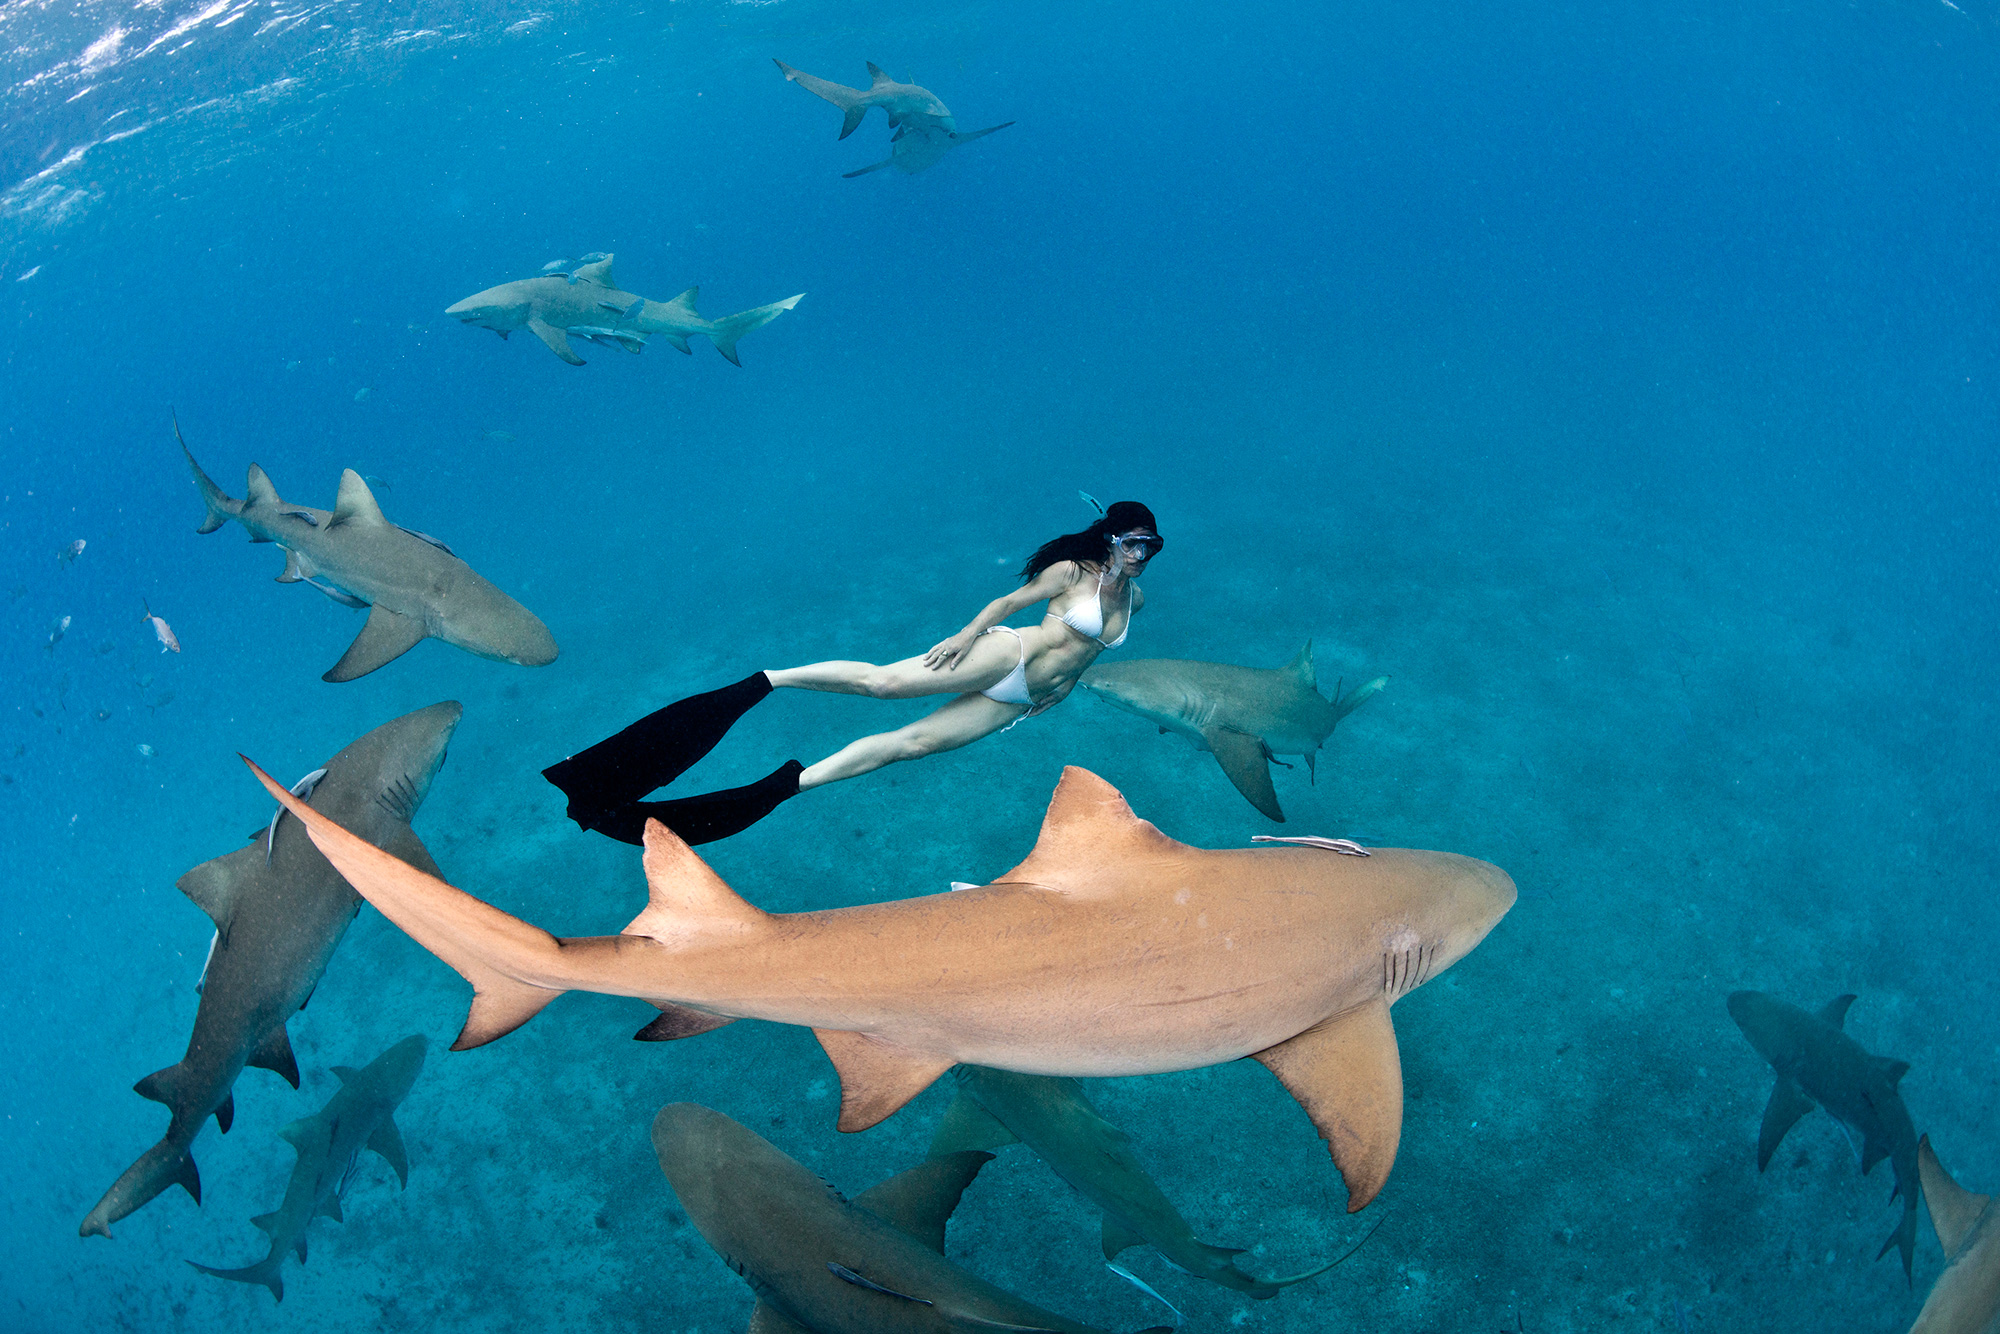 Lesley with Lemon sharks